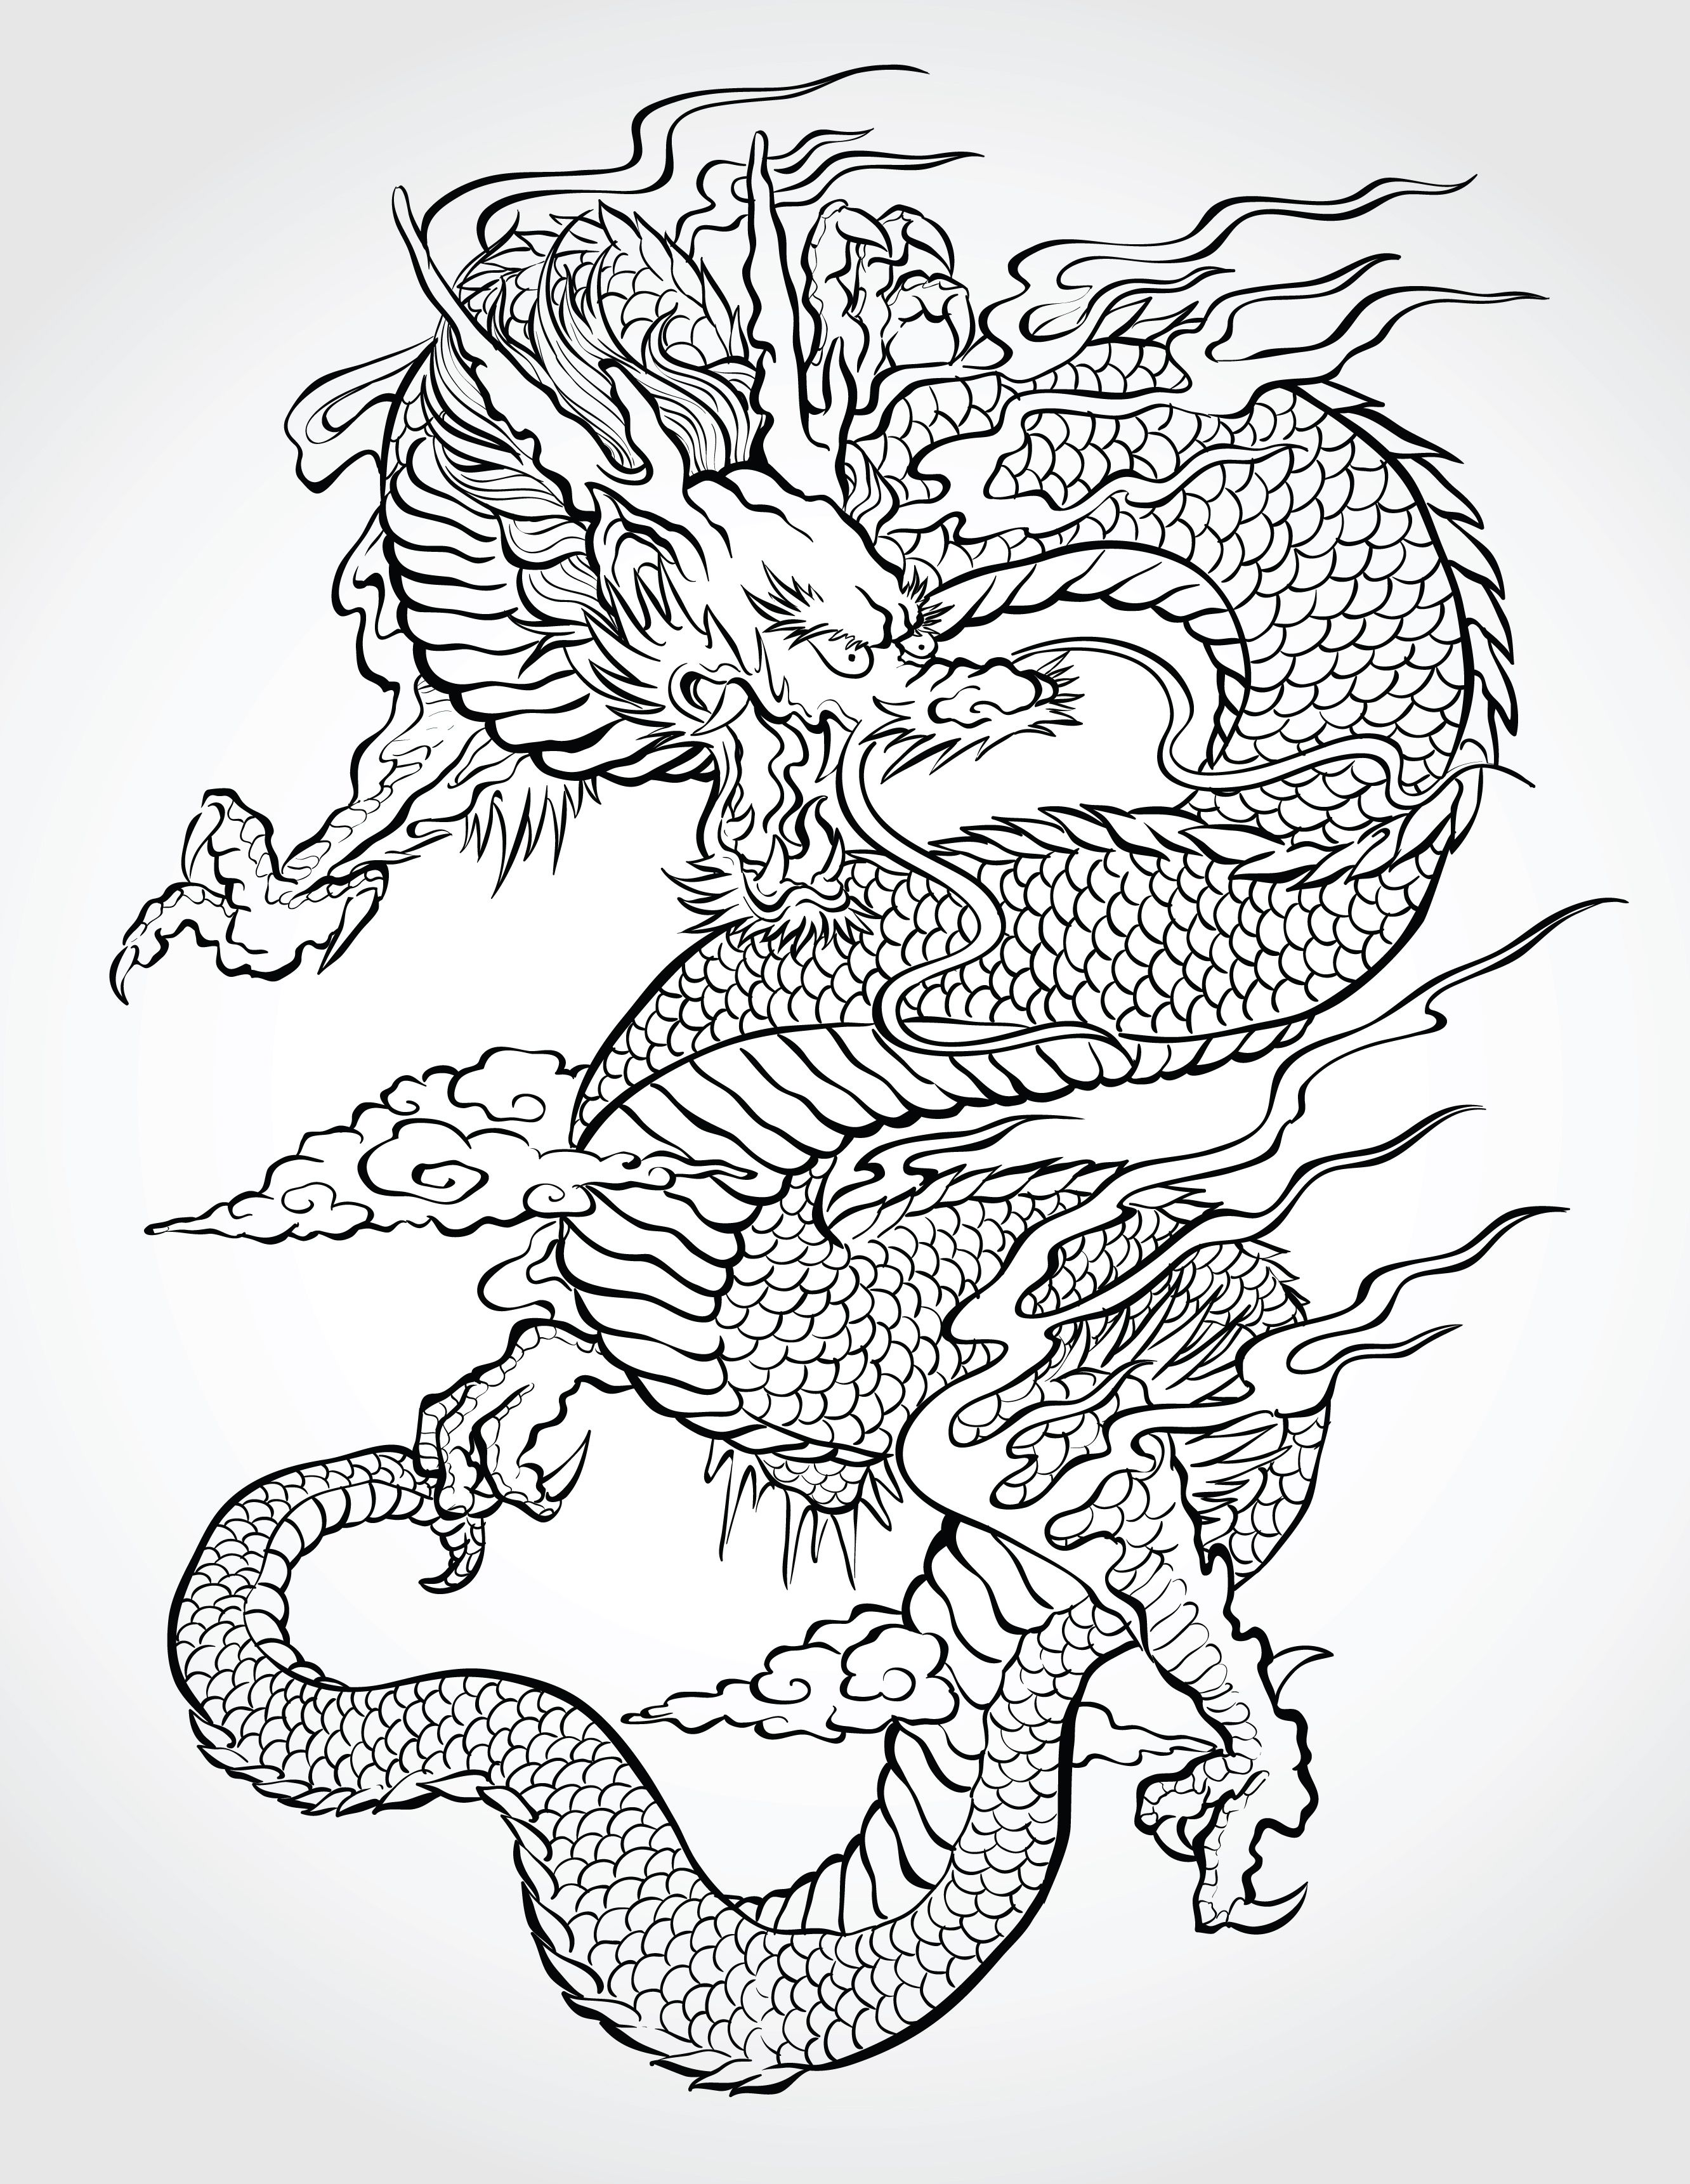 Asian Dragon Asian Dragon Tattoo Japanese Dragon Tattoos Dragon Illustration